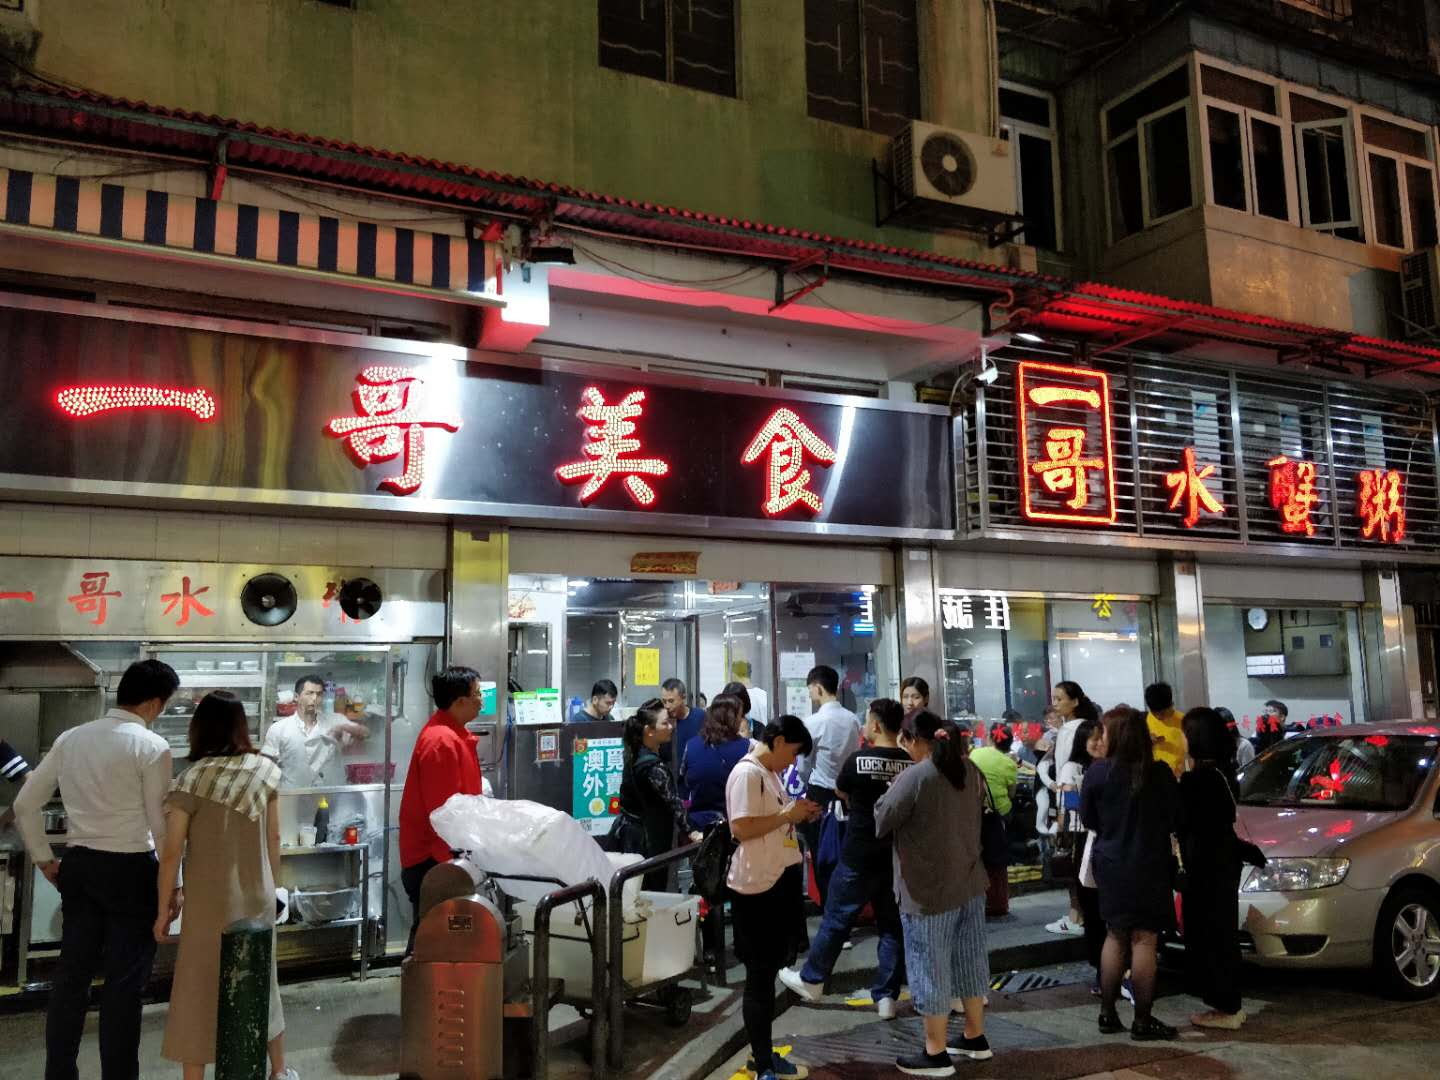 (Macau) Good place to go for supper – the restaurant that local people recommended – 一哥美食